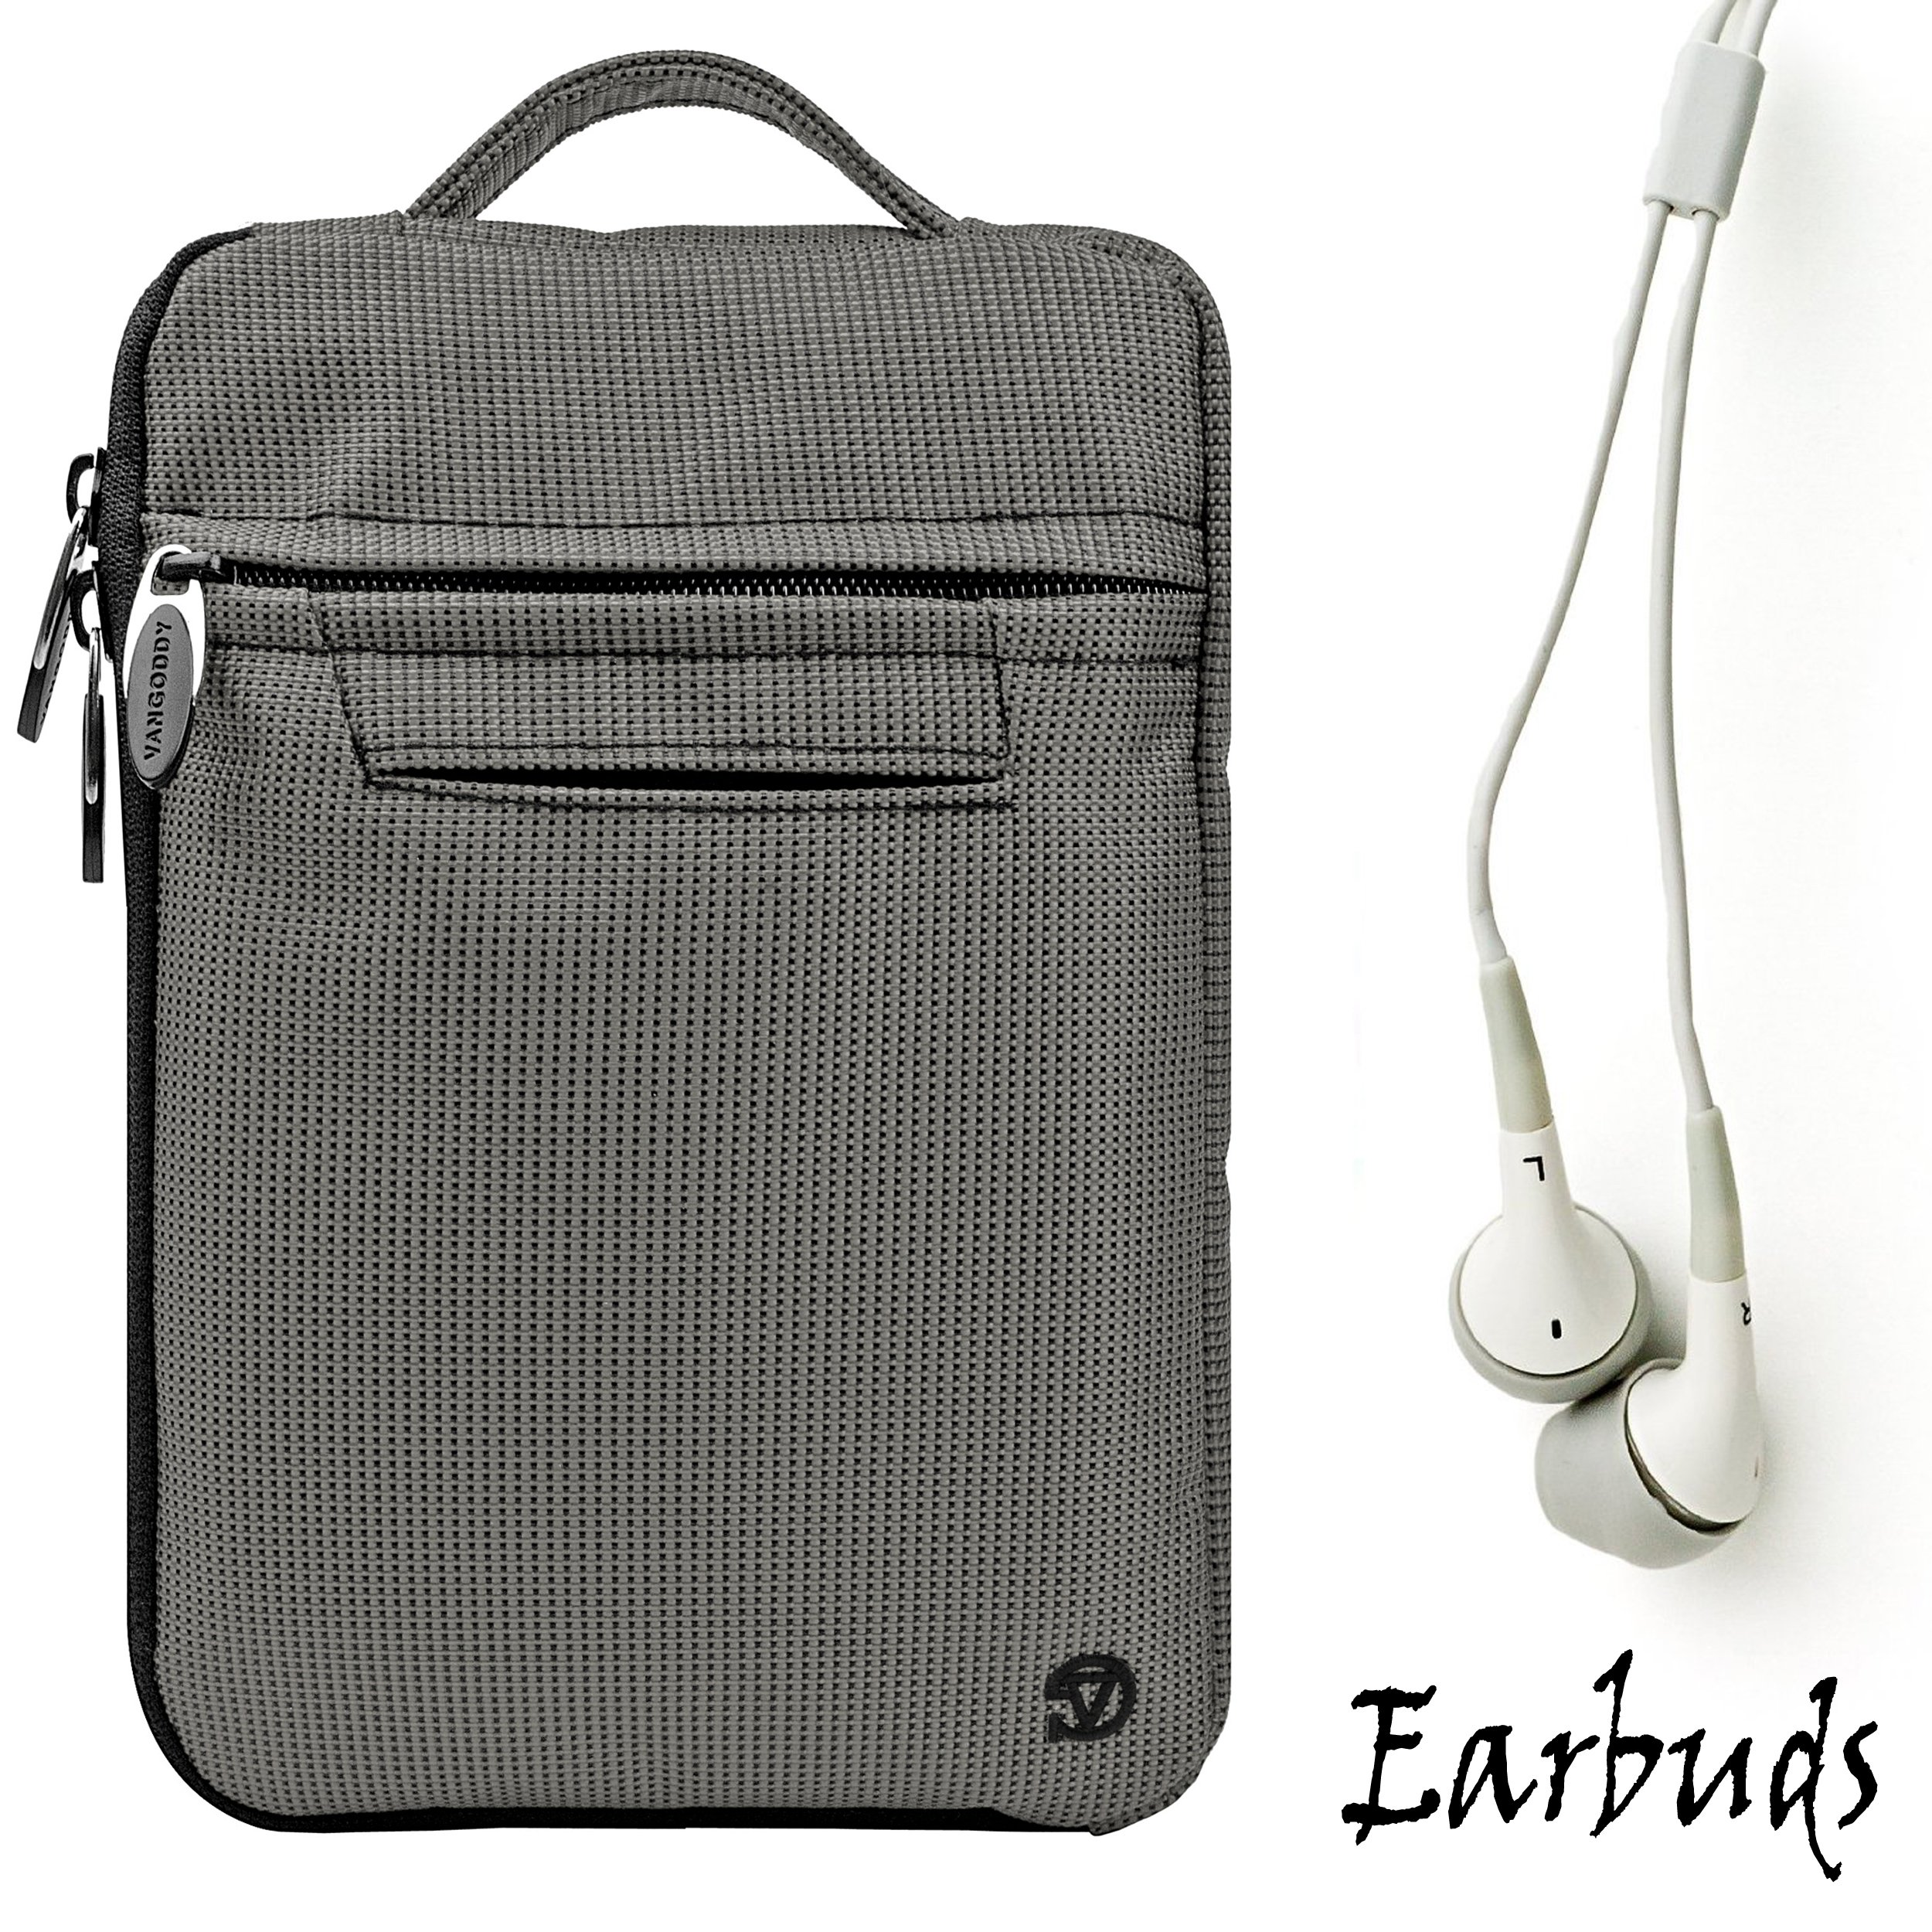 Gray Mighty Nylon Jacket Slim Compact Protective Sleeve Bag Case with accessories compartment for Amazon Kindle ( Wi-Fi 6'' E-Ink Display ) + Includes a Crystal Clear HD Noise Filter Ear buds Earphones Headphones ( 3.5mm Jack )